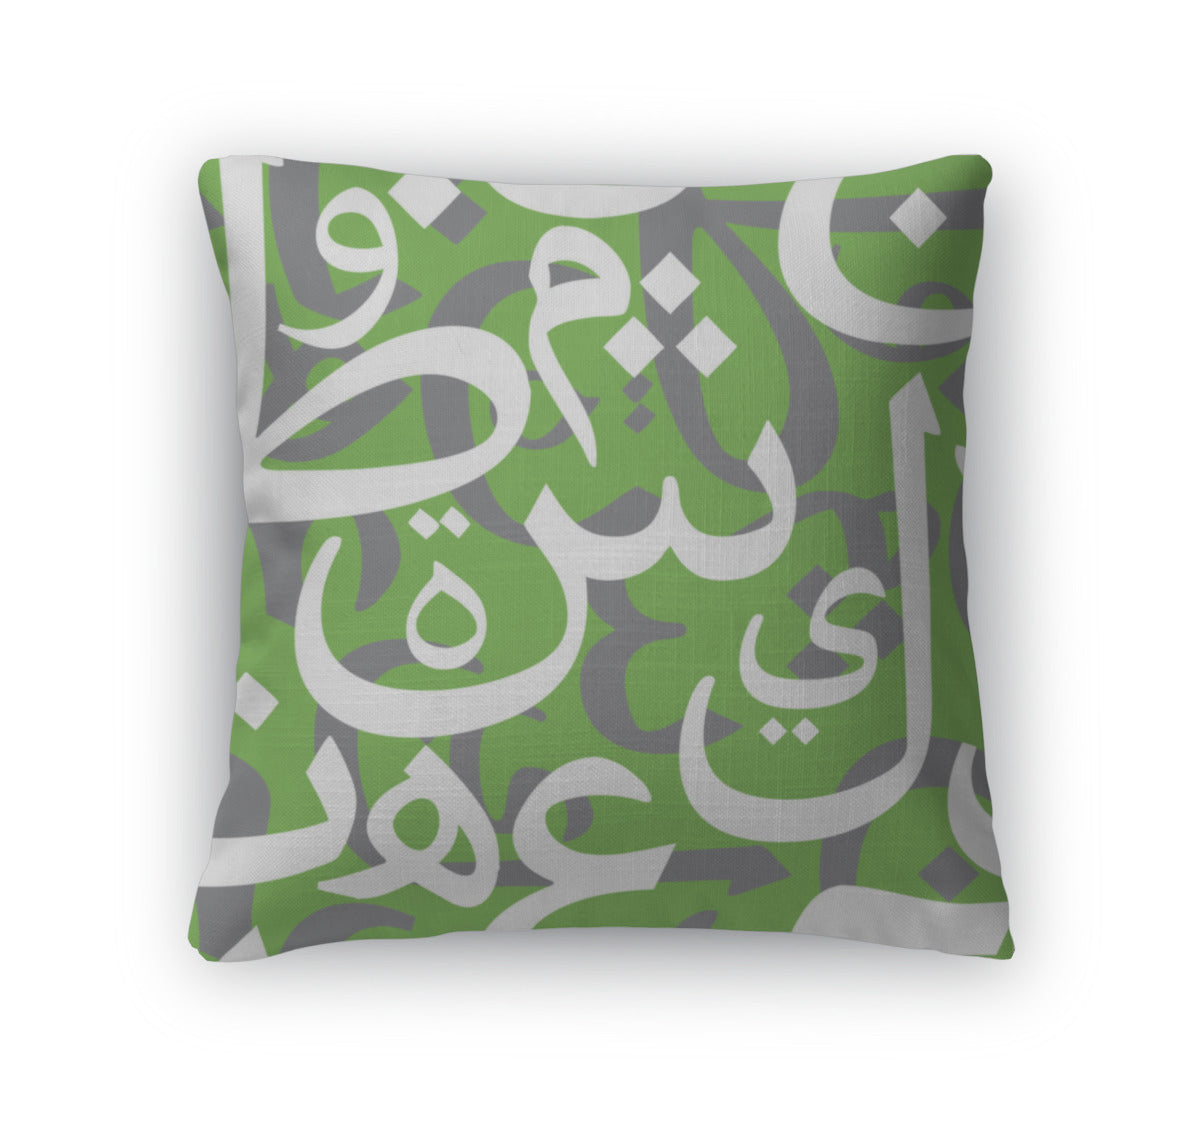 Throw Pillow, Arabic Letters Pattern - fashionbests